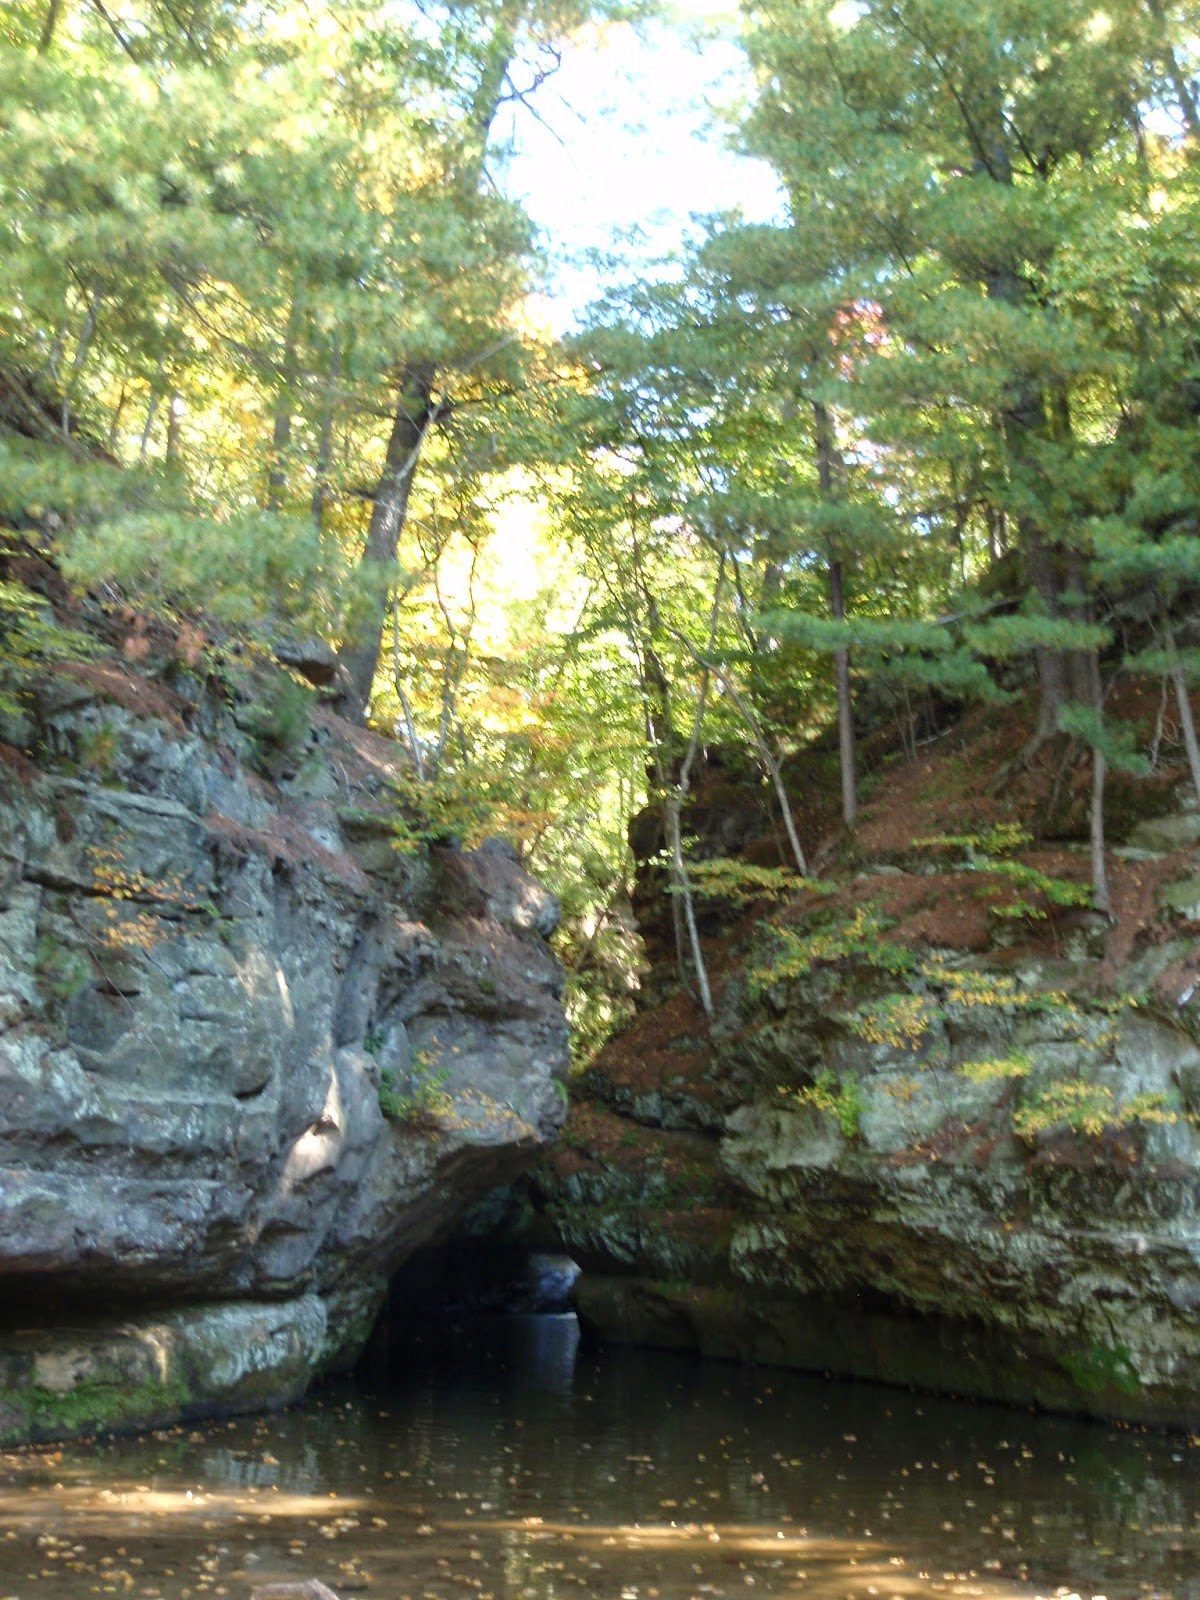 Pewits Nest Gorge and Skillet Creek